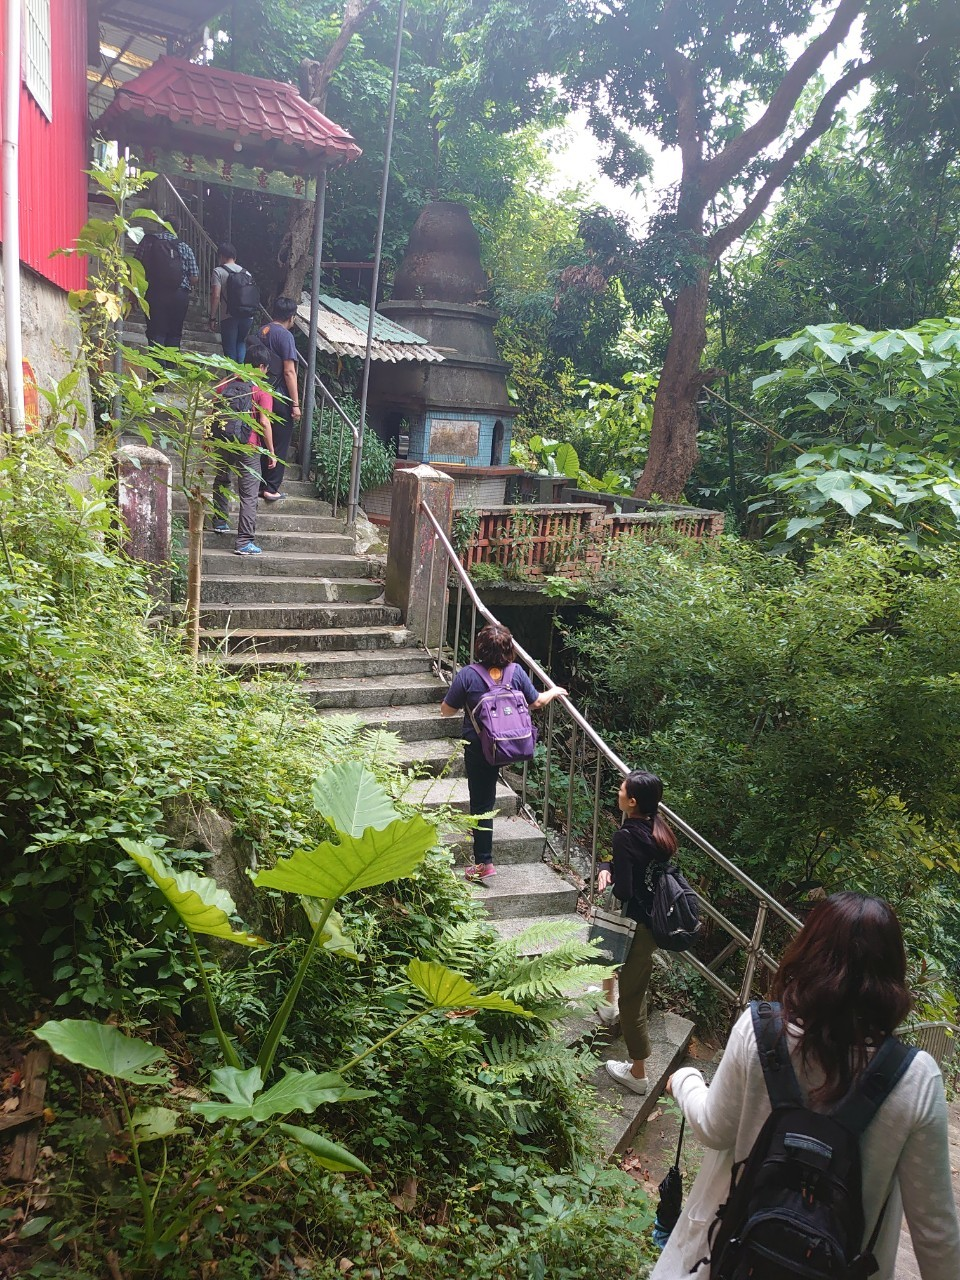 The Daoist temple halfway down the 500 steps.